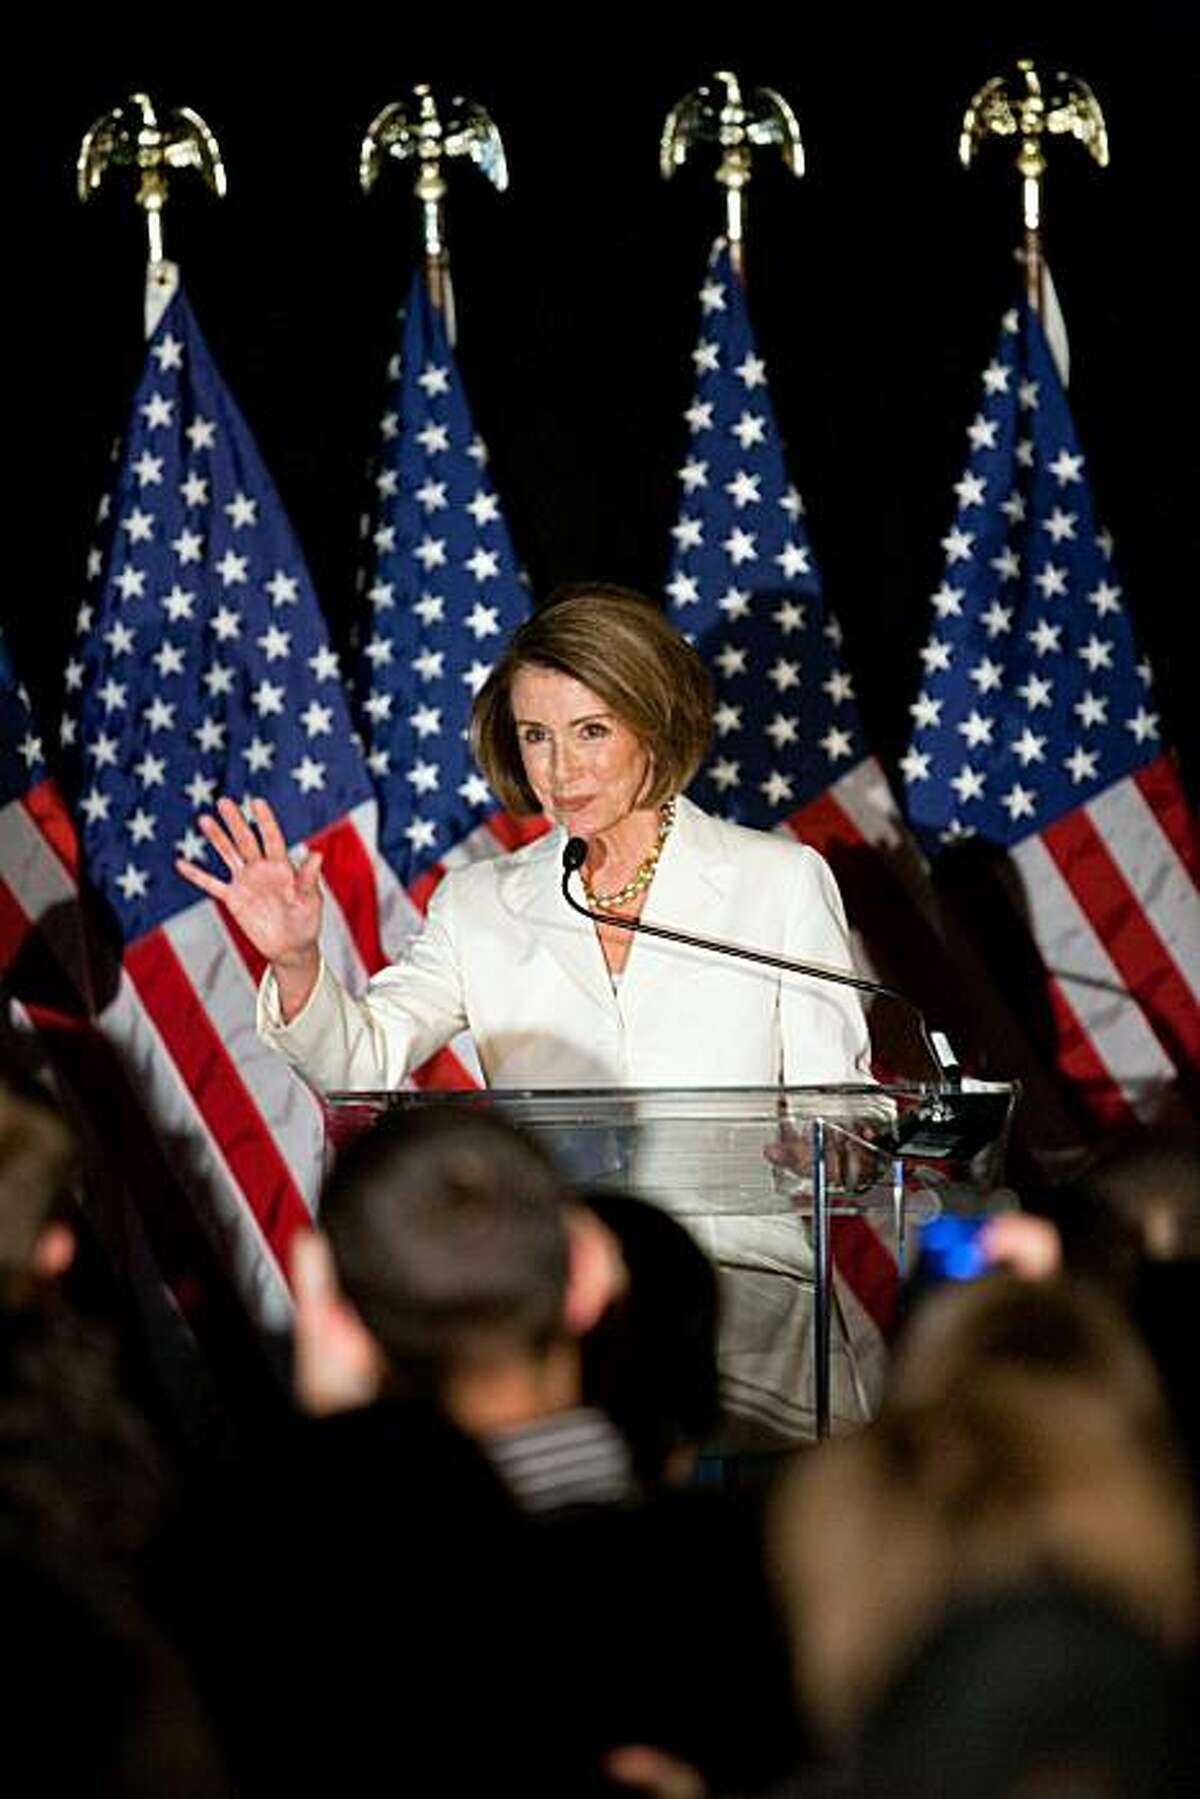 WASHINGTON - NOVEMBER 02: House Speaker Rep. Nancy Pelosi (D-CA) speaks at an election-night rally held by the Democratic Congressional Campaign Committee on November 2, 2010 in Washington, DC. Congressional Democrats were expected to suffer big losses inthe midterm elections, with Republicans poised to gain control of the House.